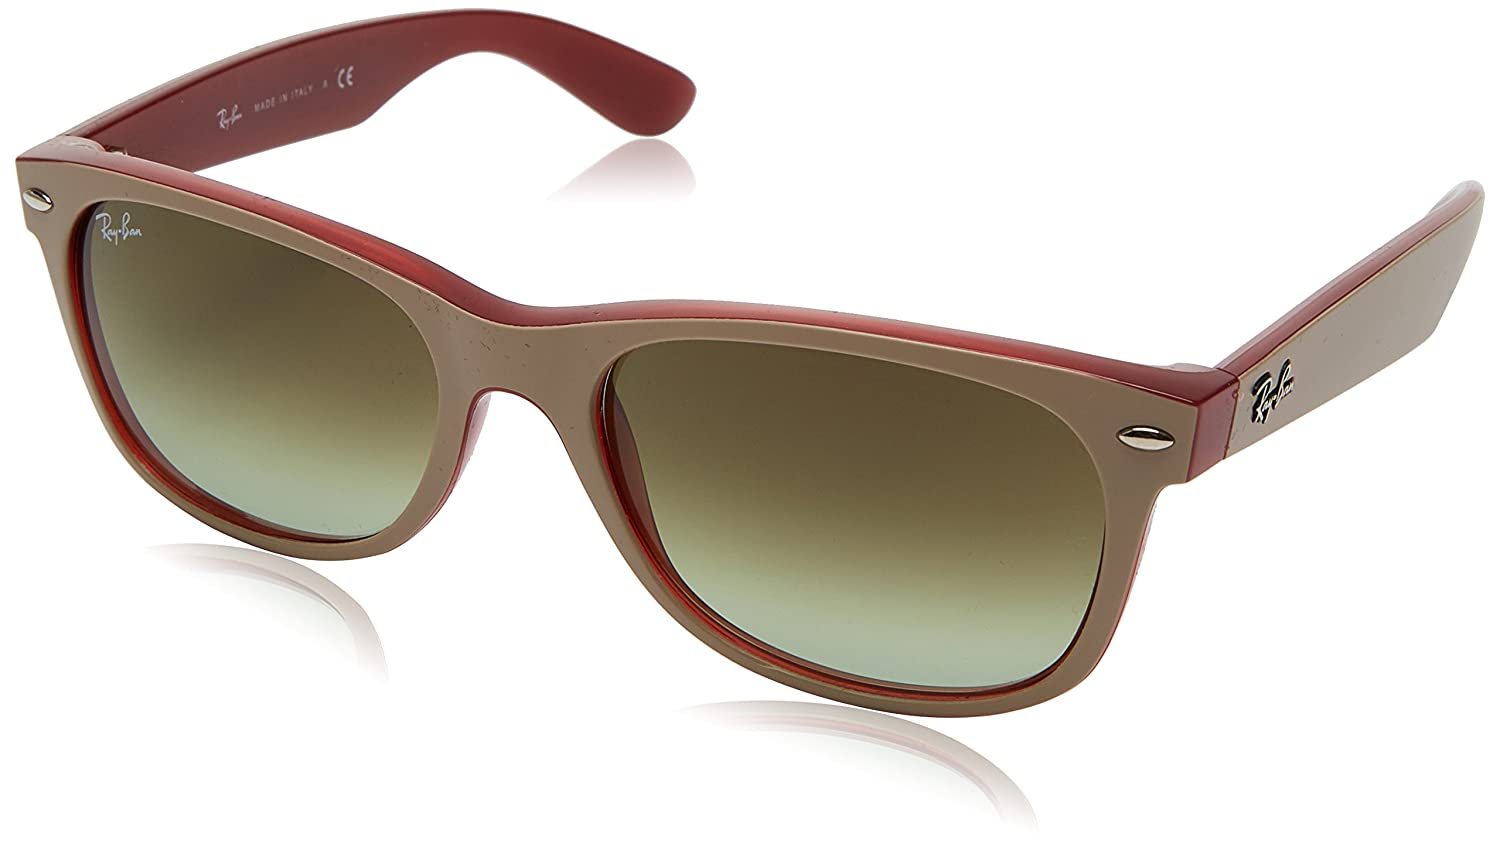 f206092139754 Ray-Ban RAYBAN 0RB2132 6307A6 55 Montures de lunettes Matte Beige on Opal  Red